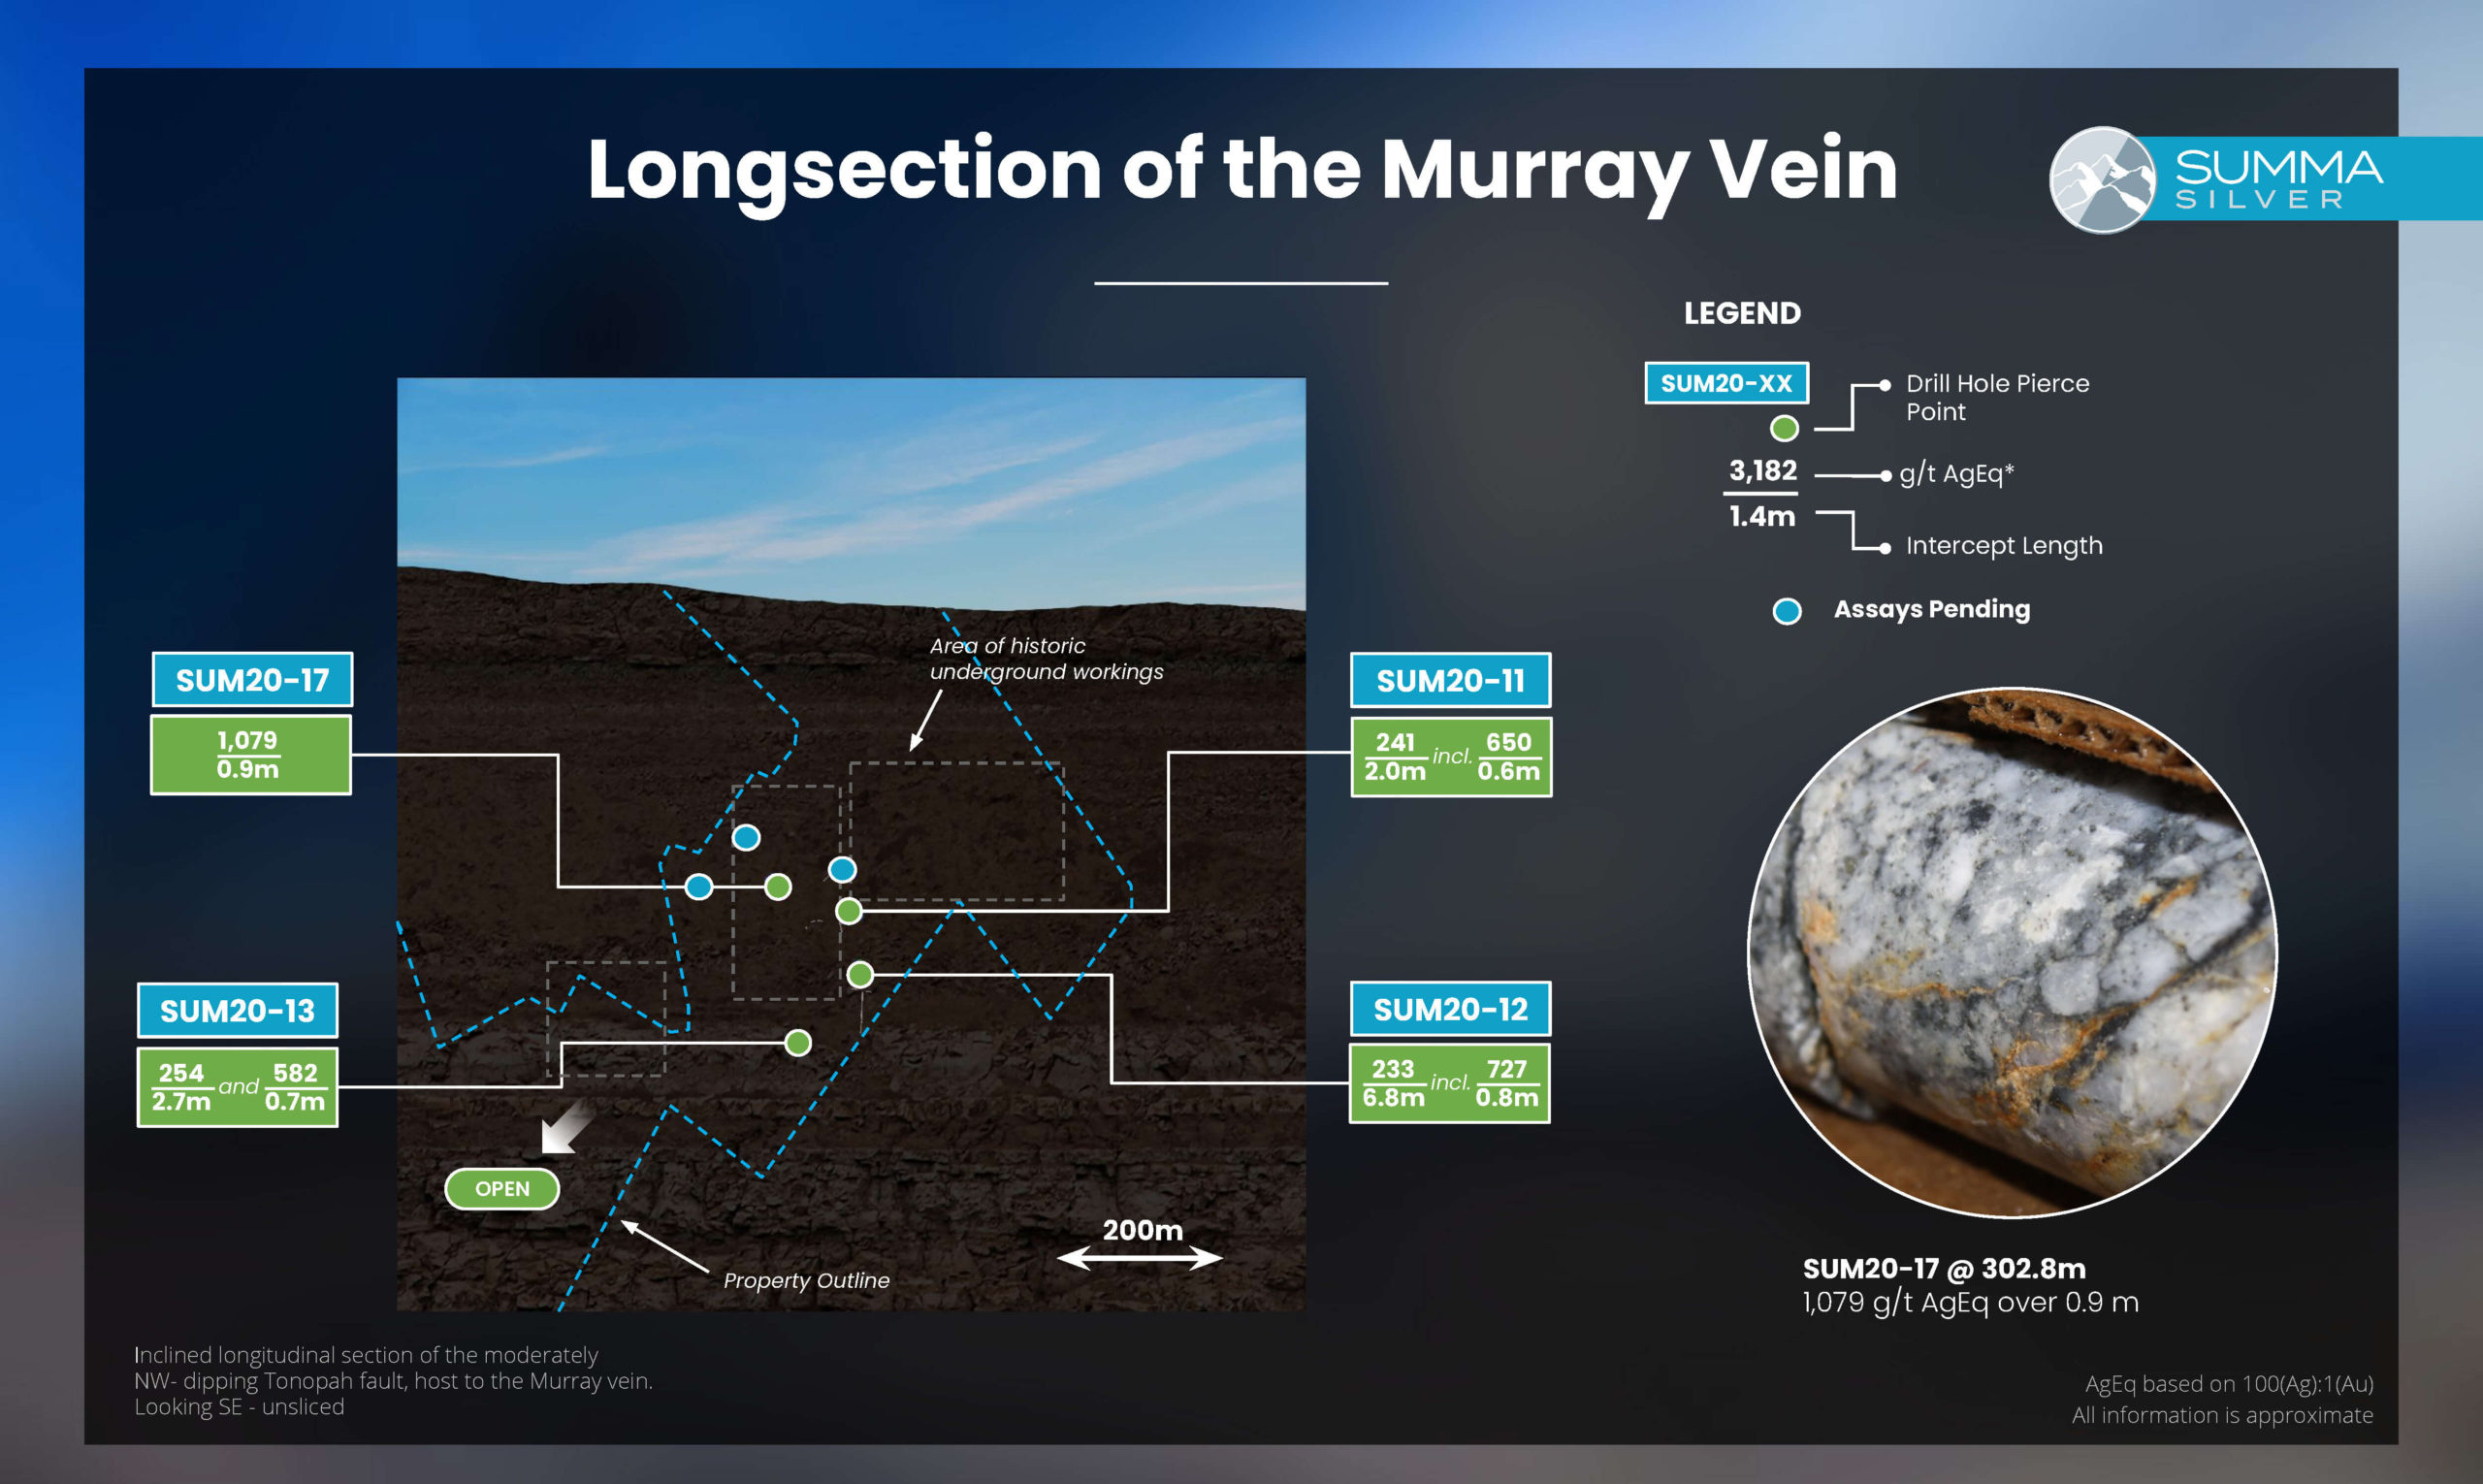 murray vein longsection